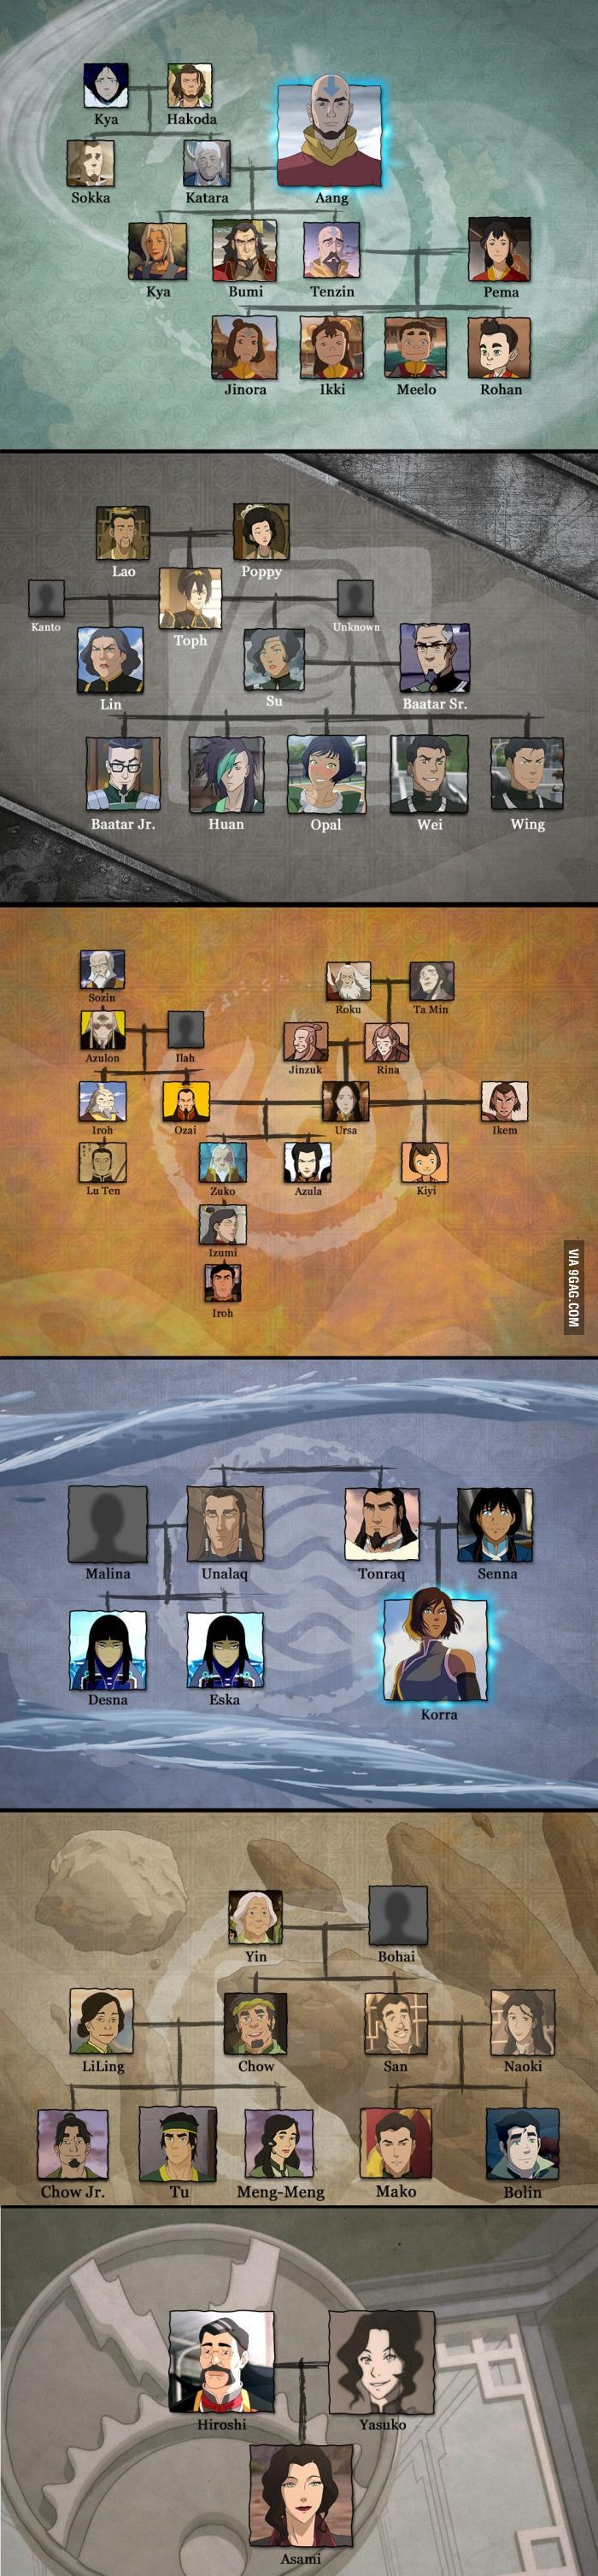 Avatar the Last Airbender family tree. Kya and Bumi are the wrong way round, but whatever. :)